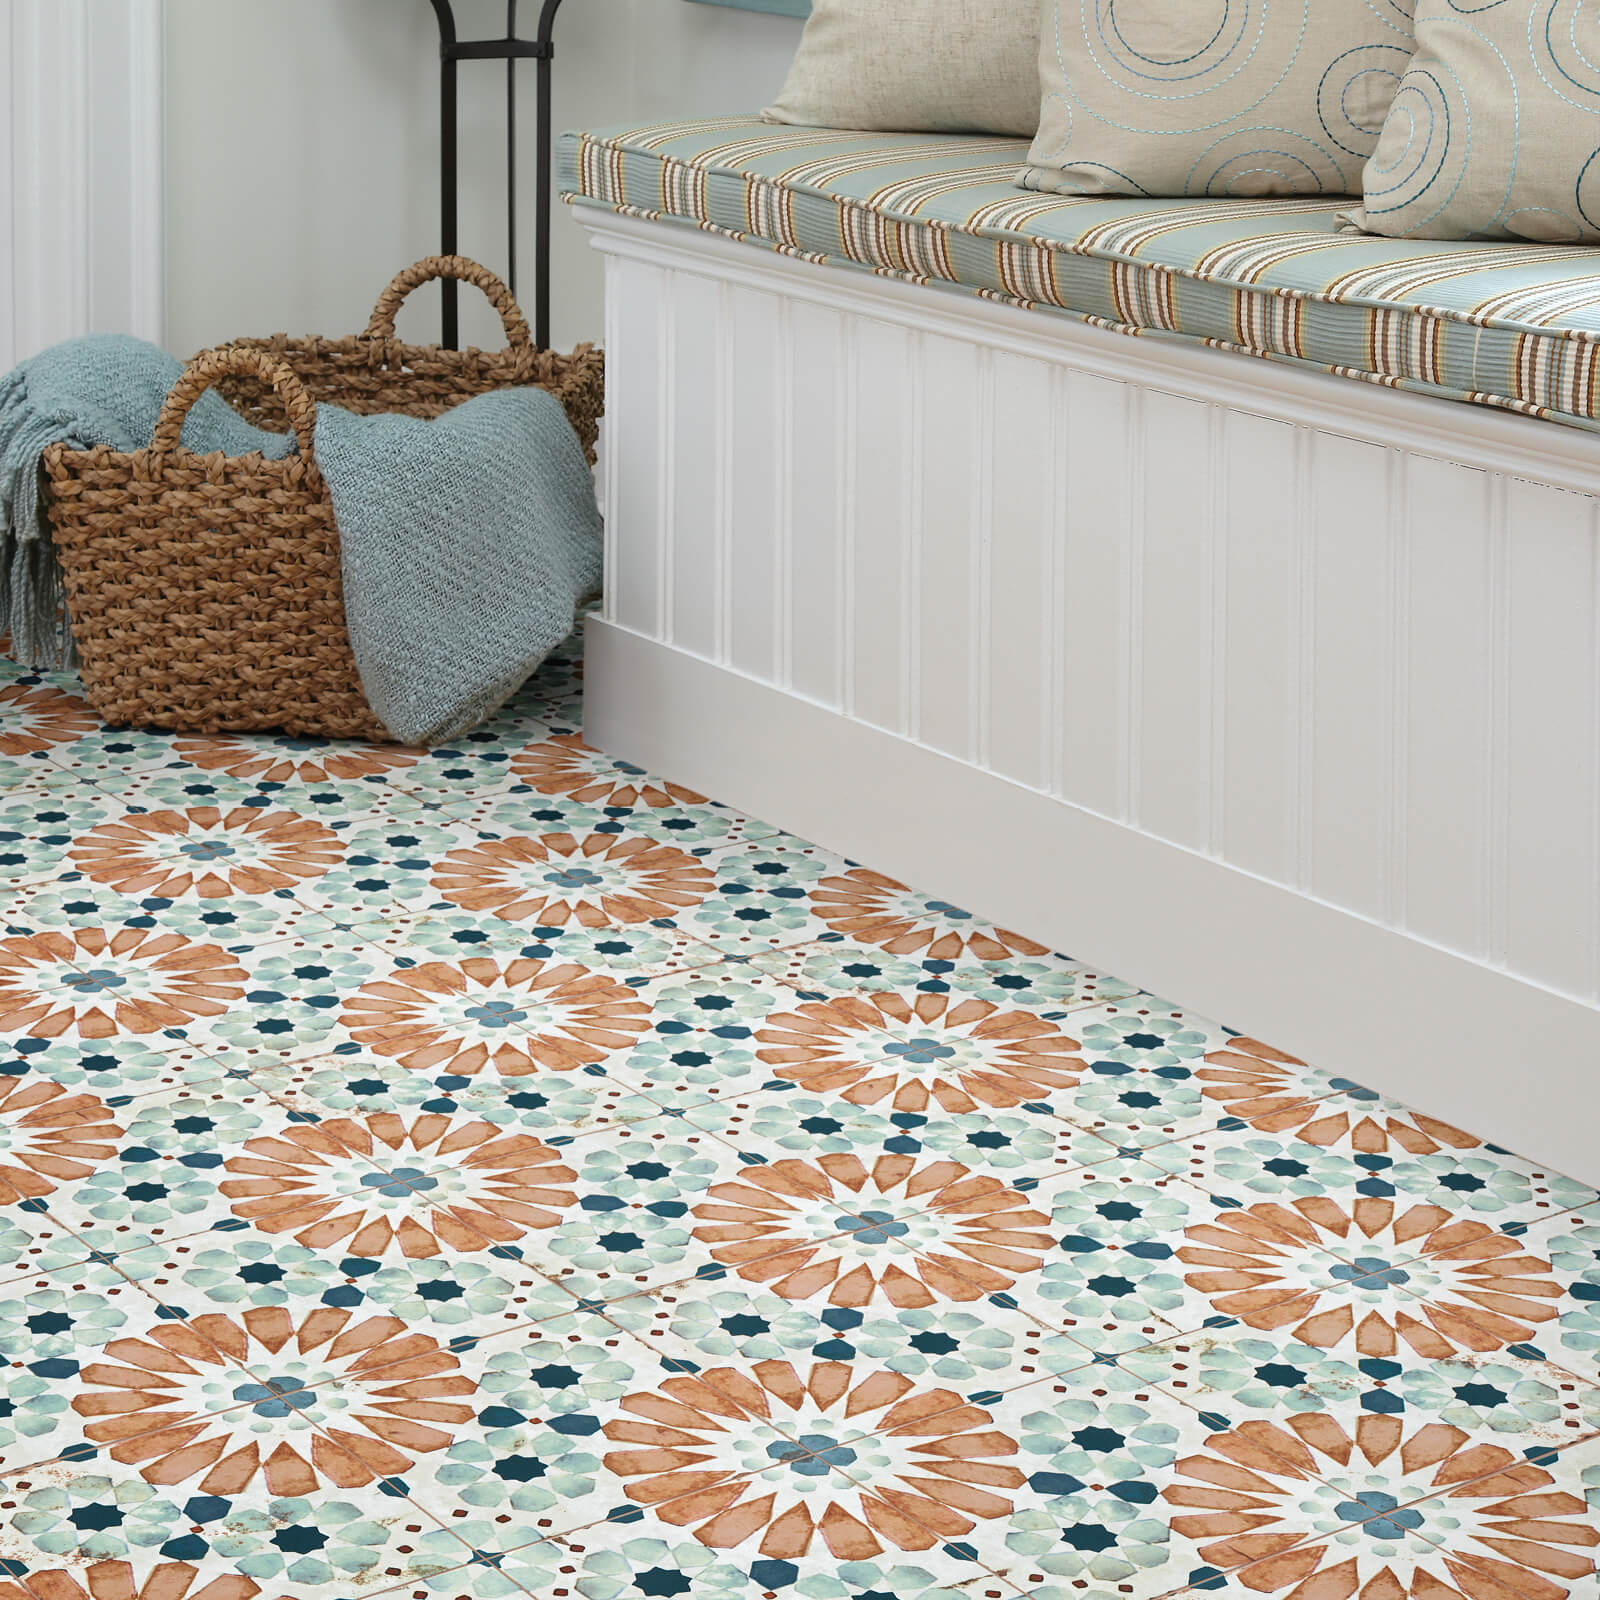 Islander In Deco Tile | Carpet Advantage